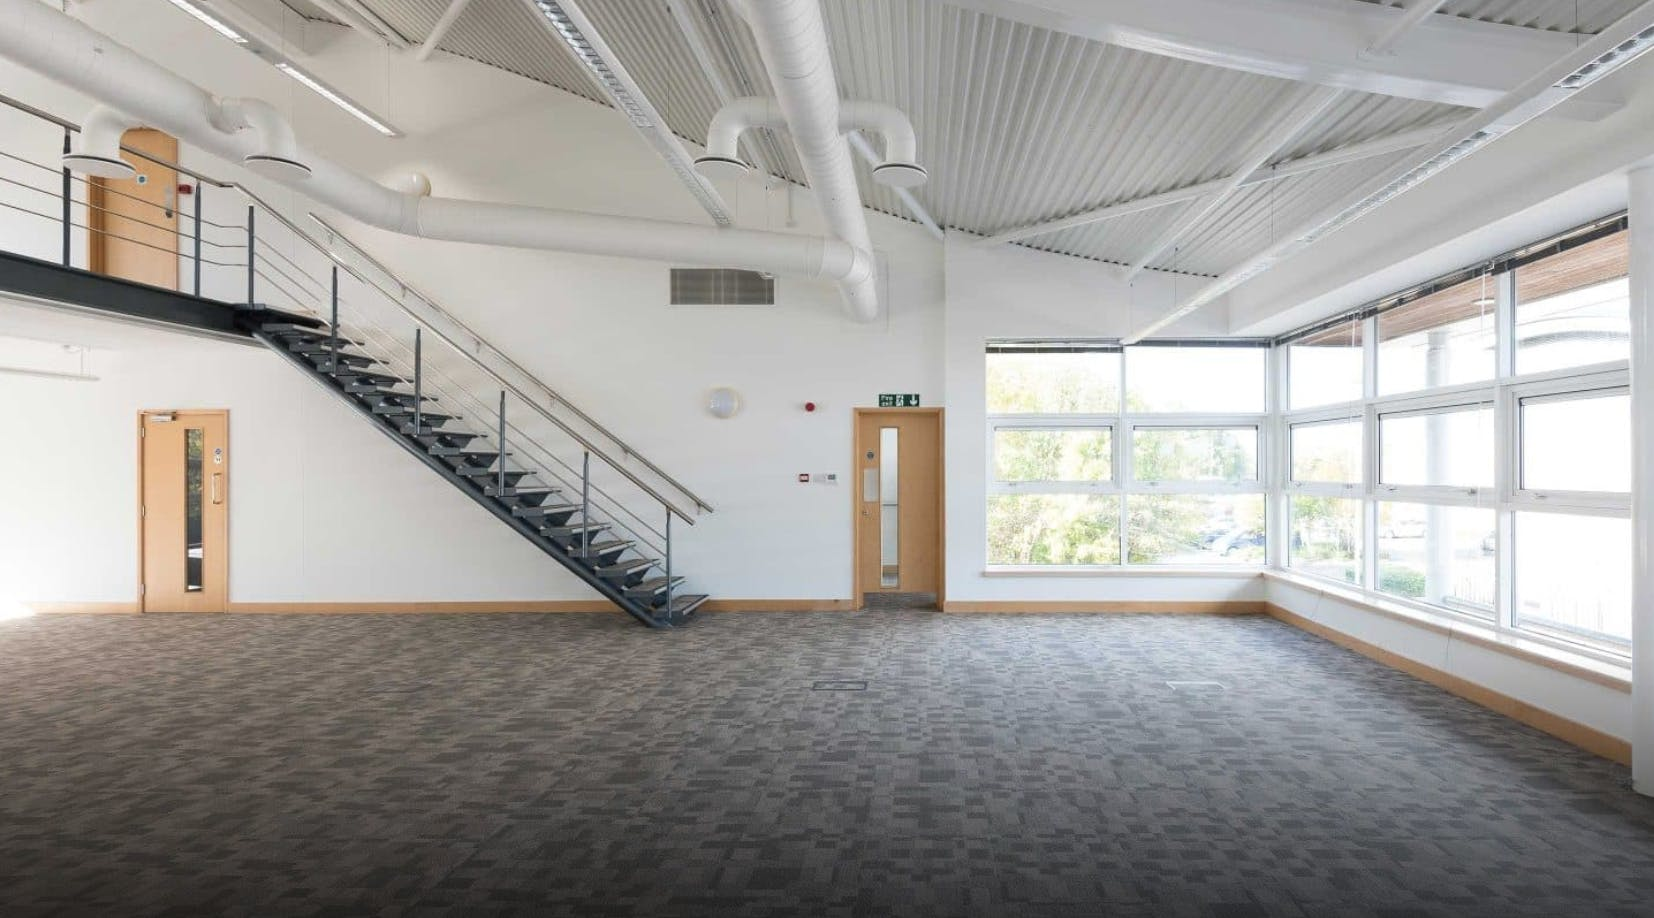 135 Winnersh Triangle, Wharfedale Road, Reading, Offices To Let - 135  1.PNG